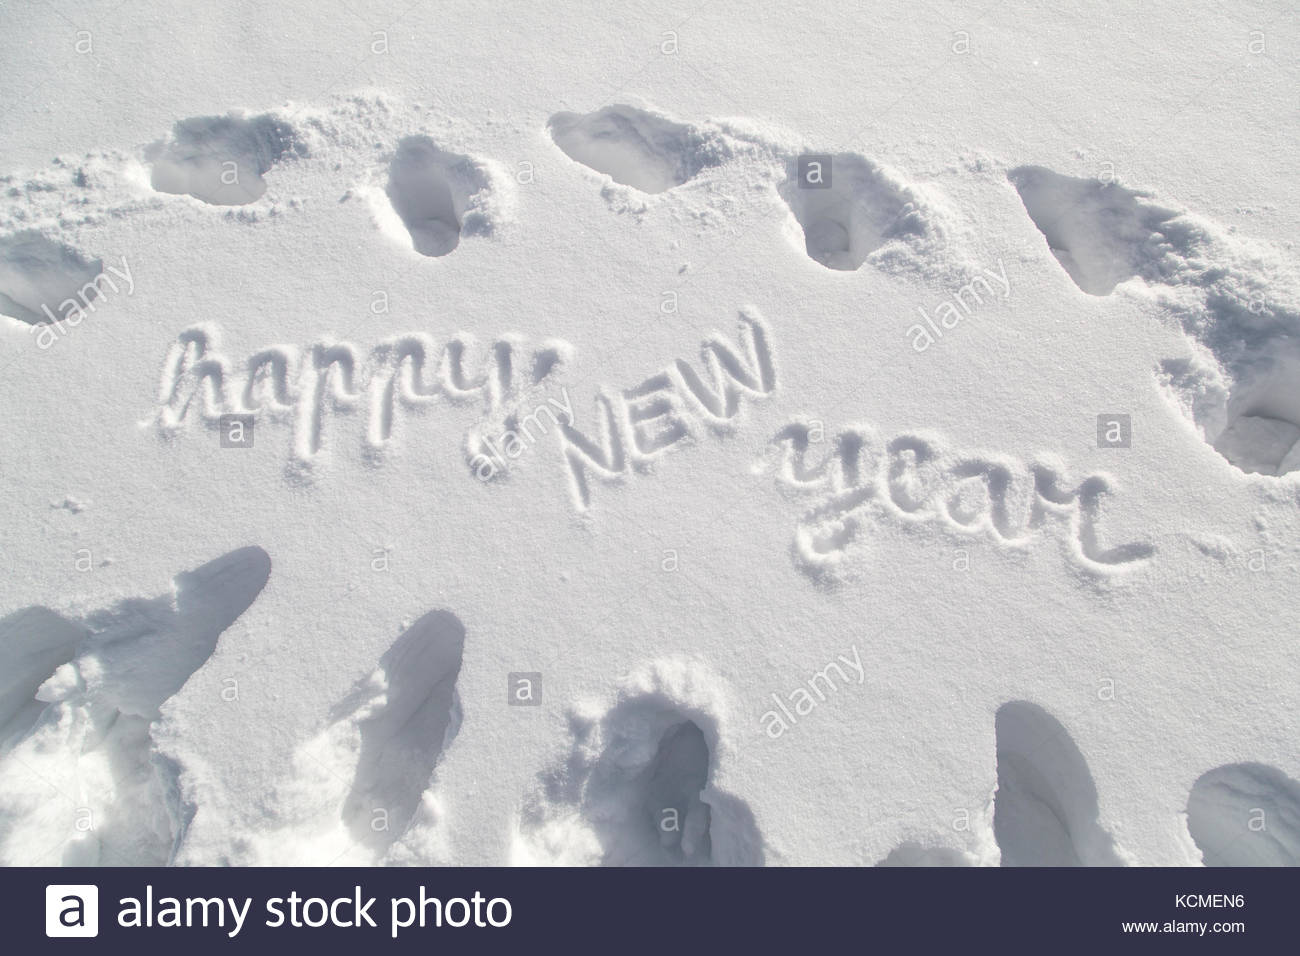 happy new year handwritten message on the deep snow with shoe prints at sunny day lovely snowy happy new year greeting card